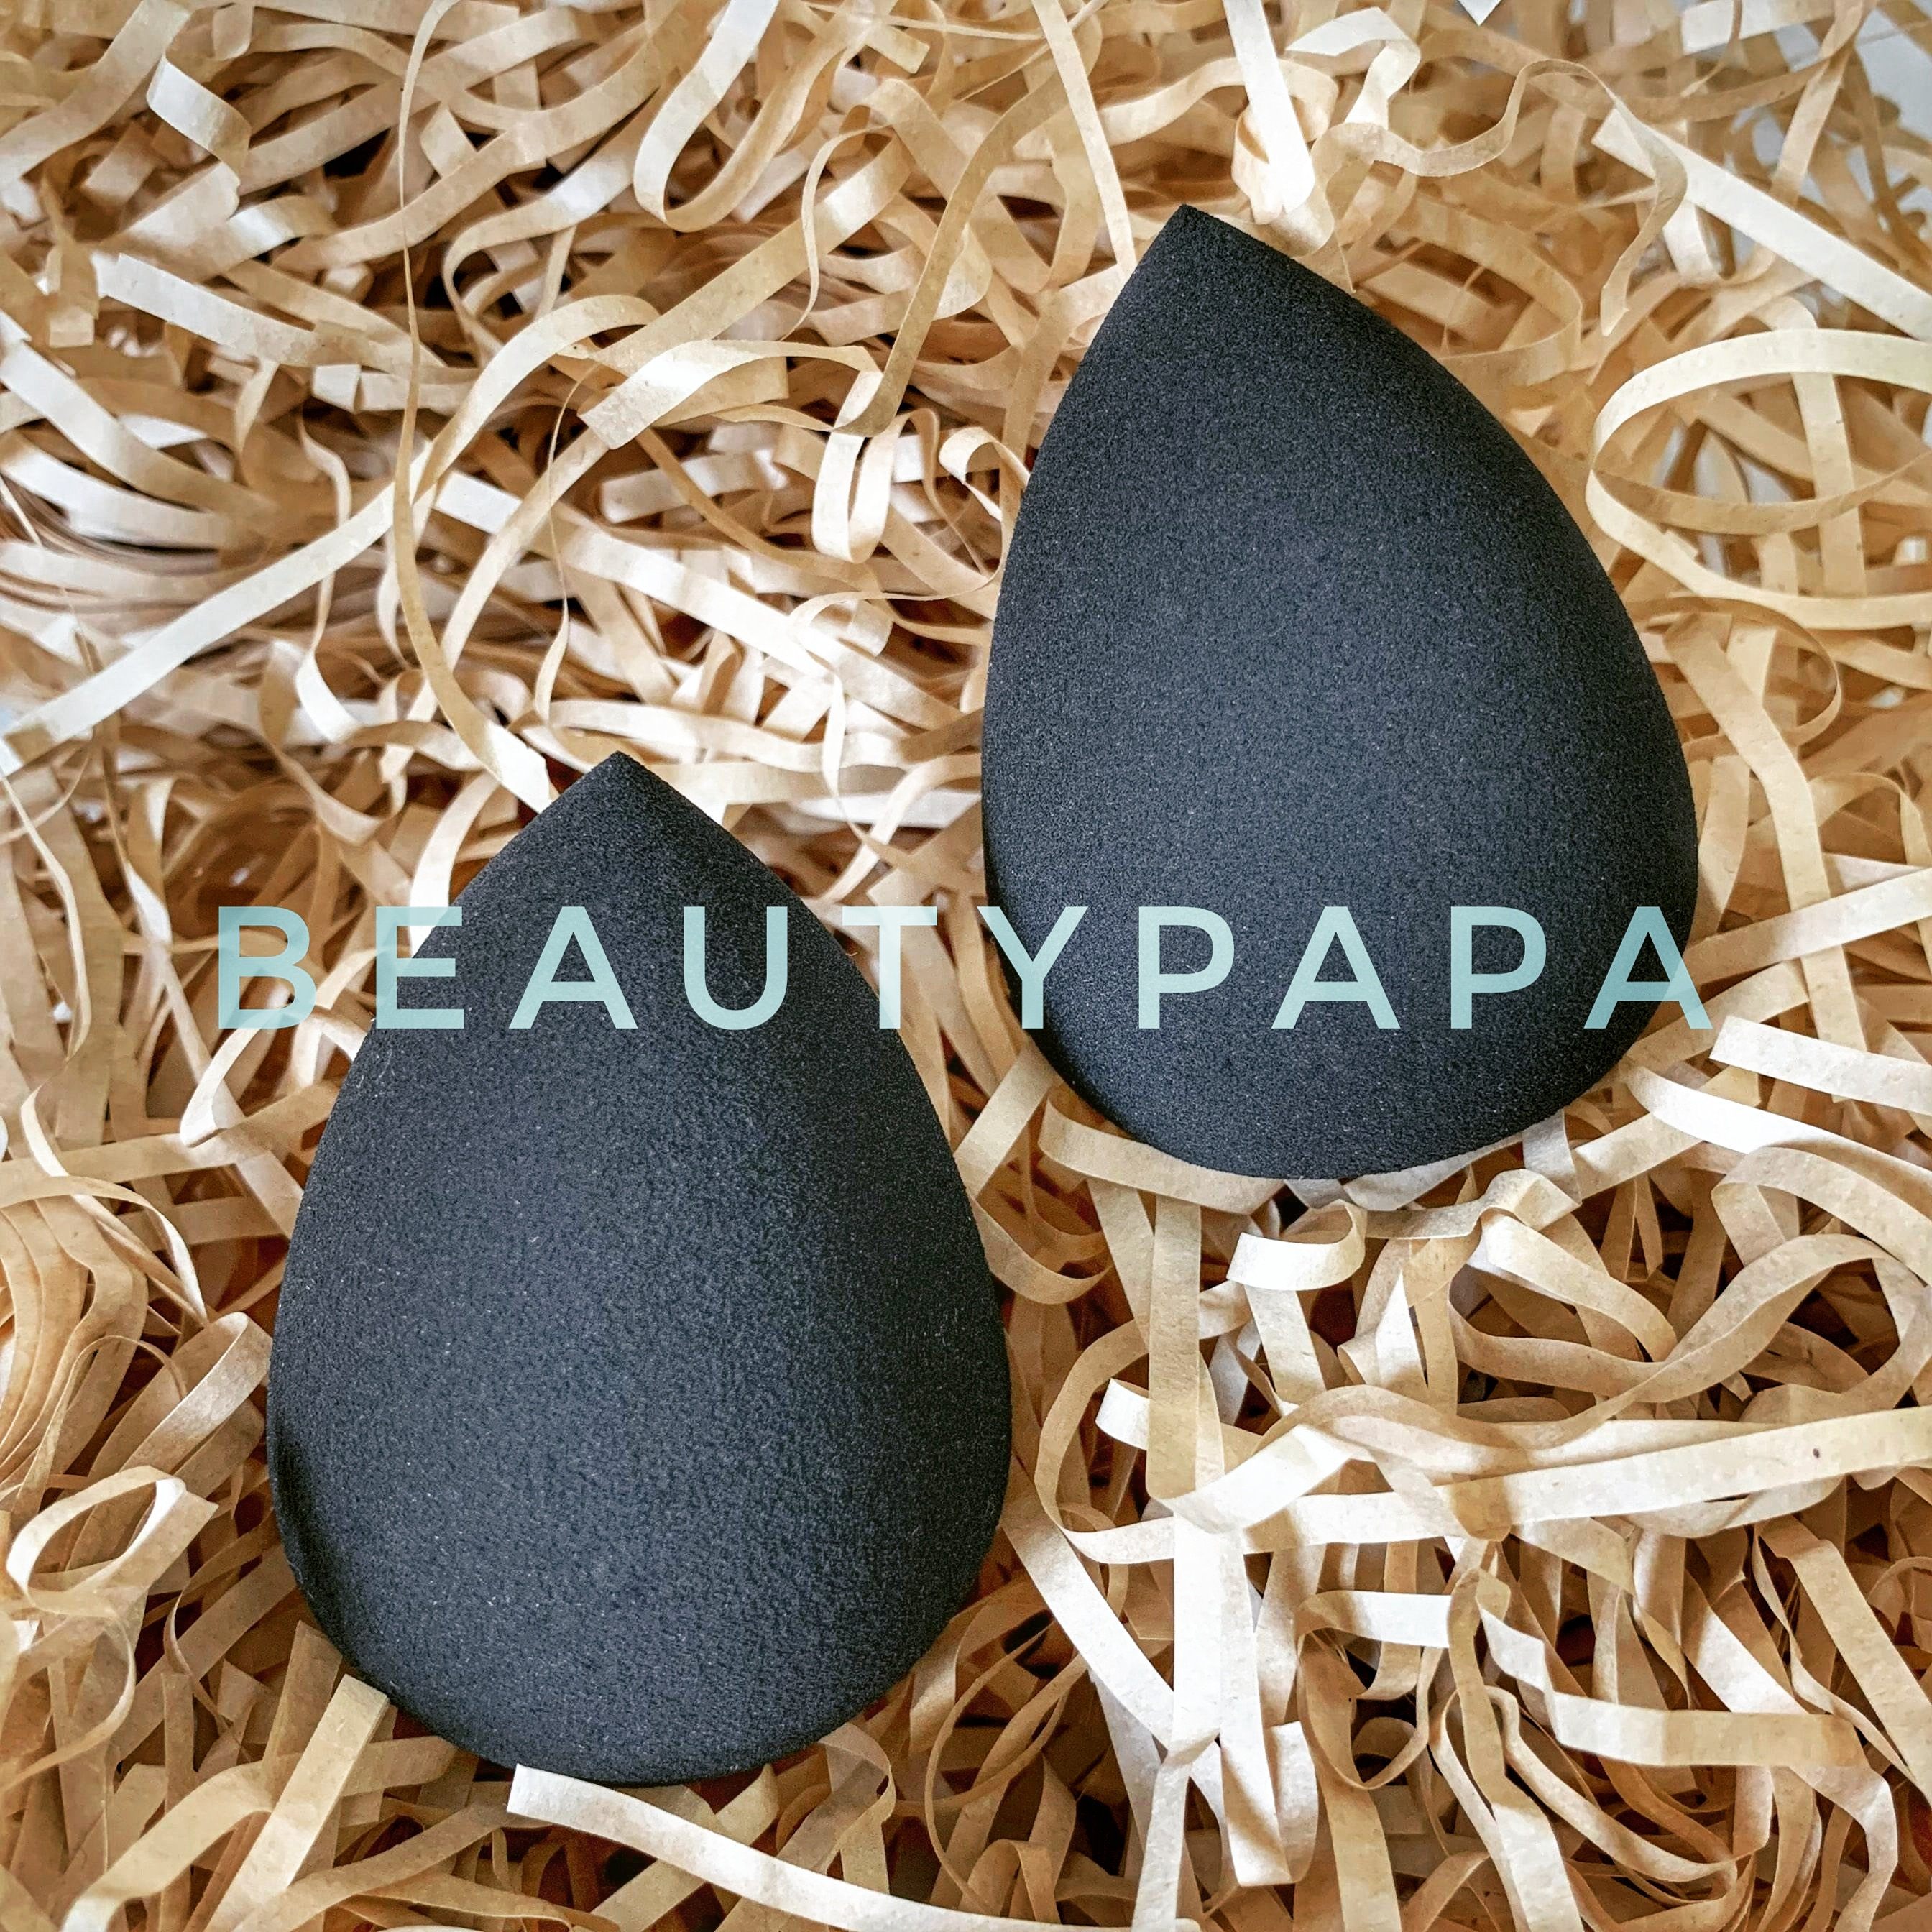 BeautyPaPa 2pcs Black Makeup Sponge Applicator Super Soft Beauty Make up Tools Powder Smooth Foundation Blending Cosmetic Puffs(China)